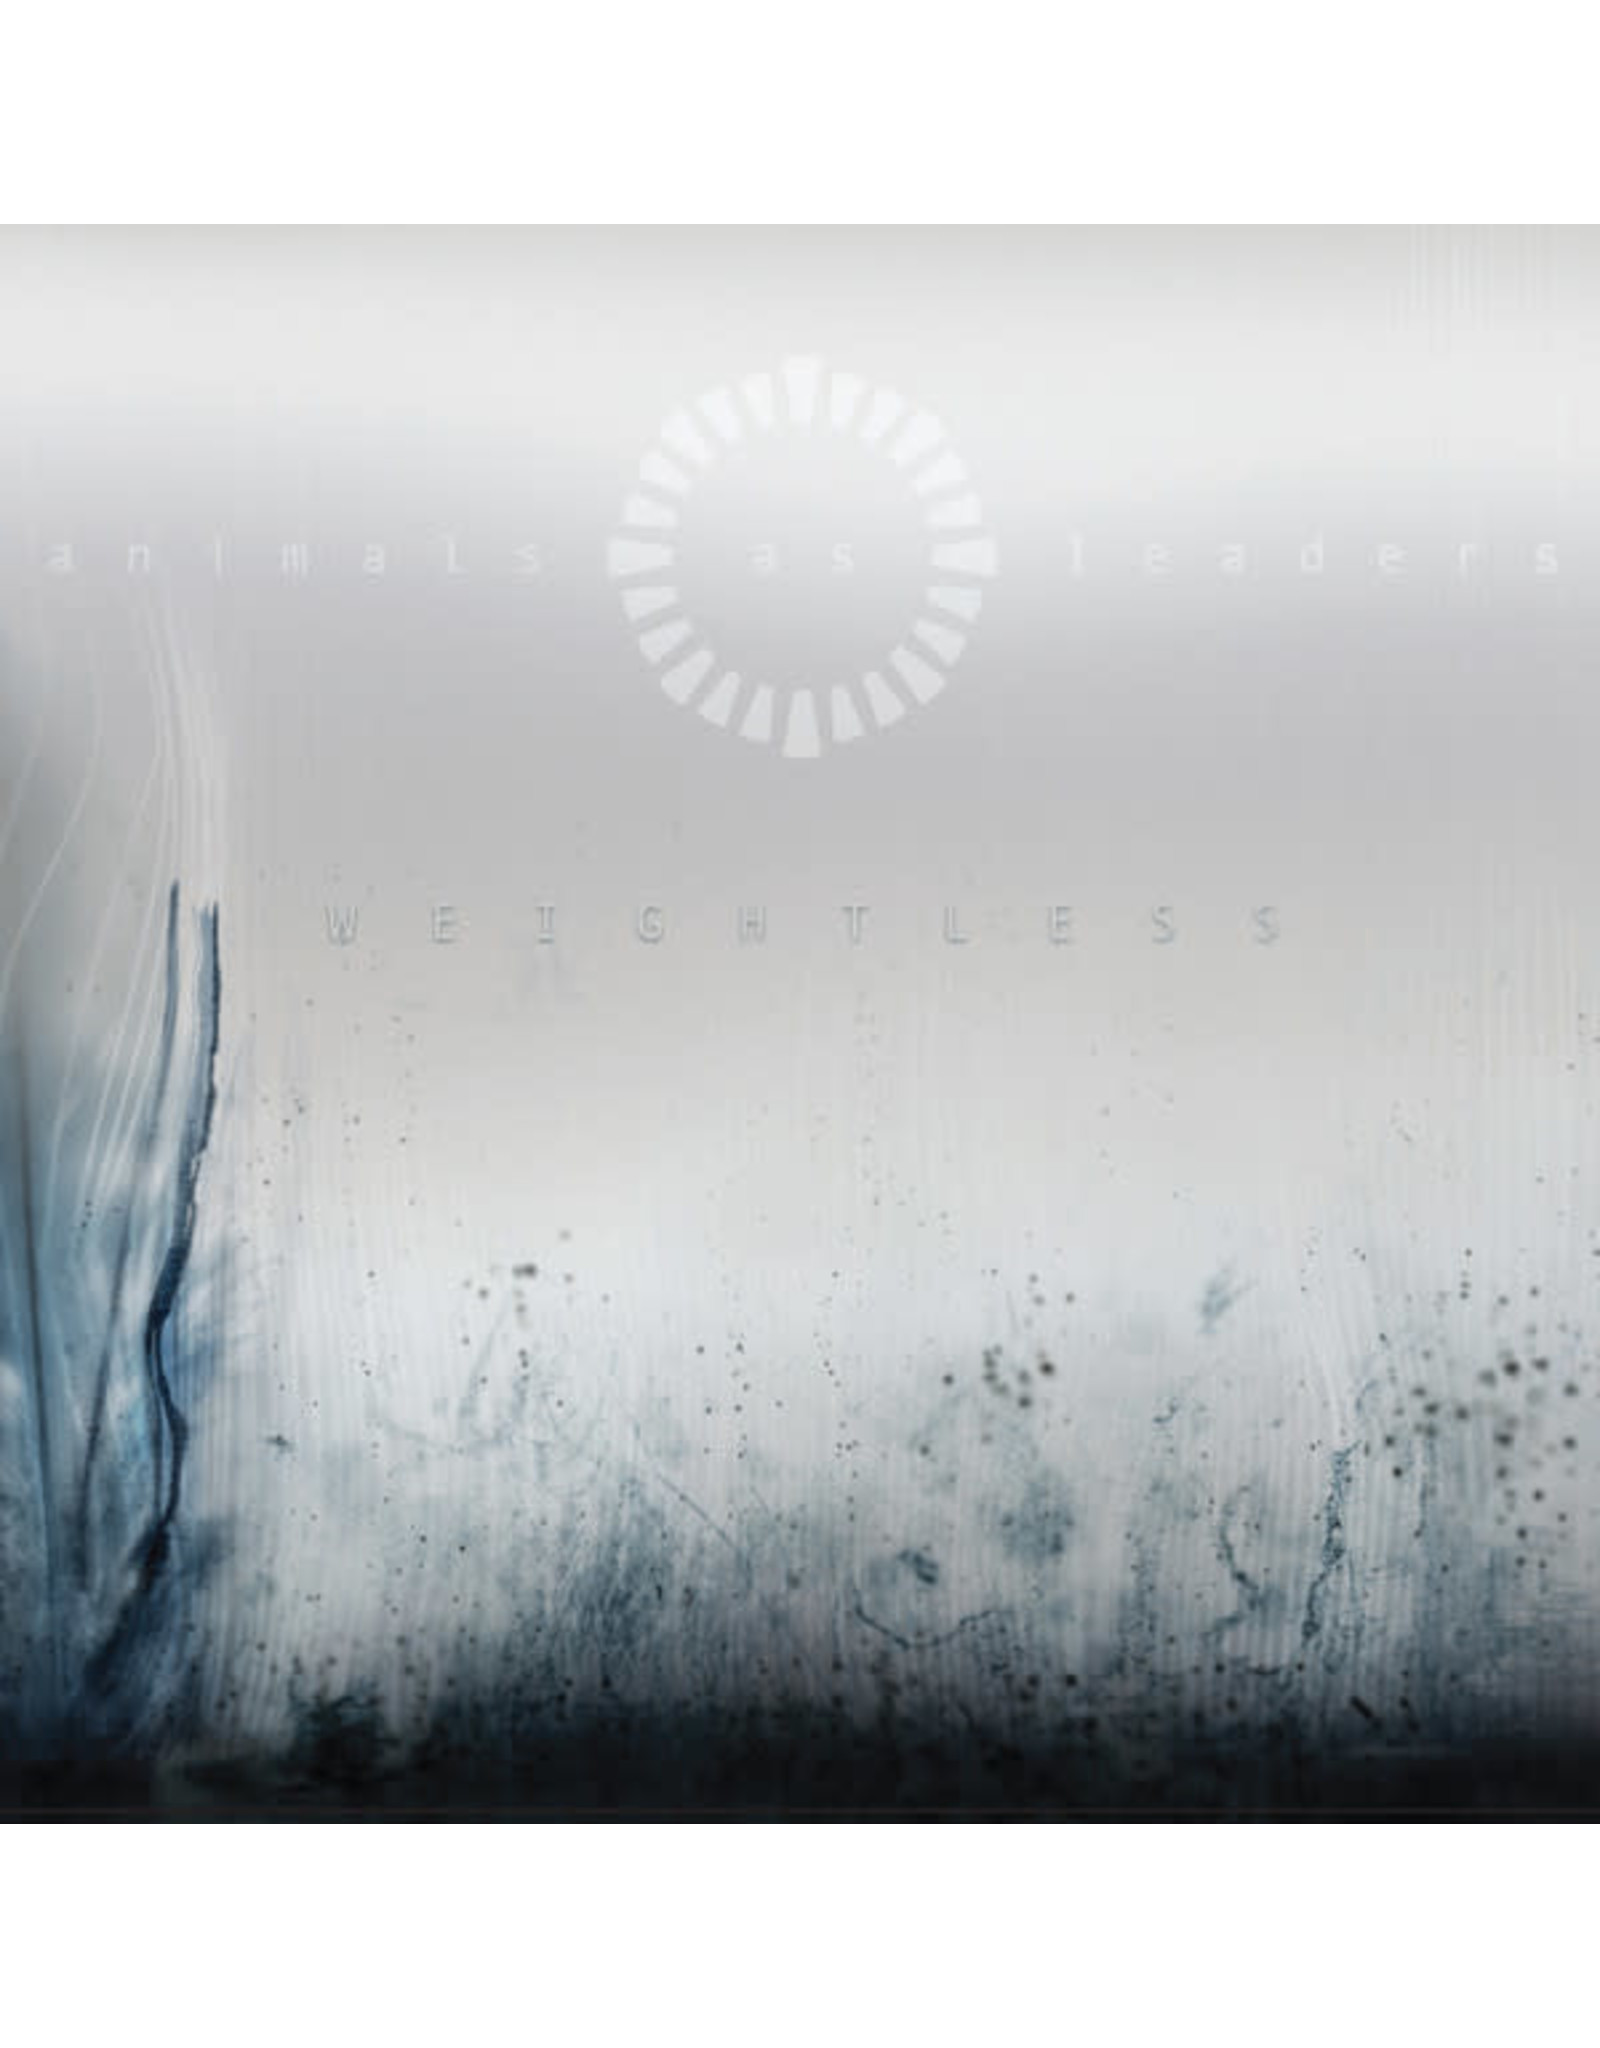 New Vinyl Animals As Leaders - Weightless (Colored) LP